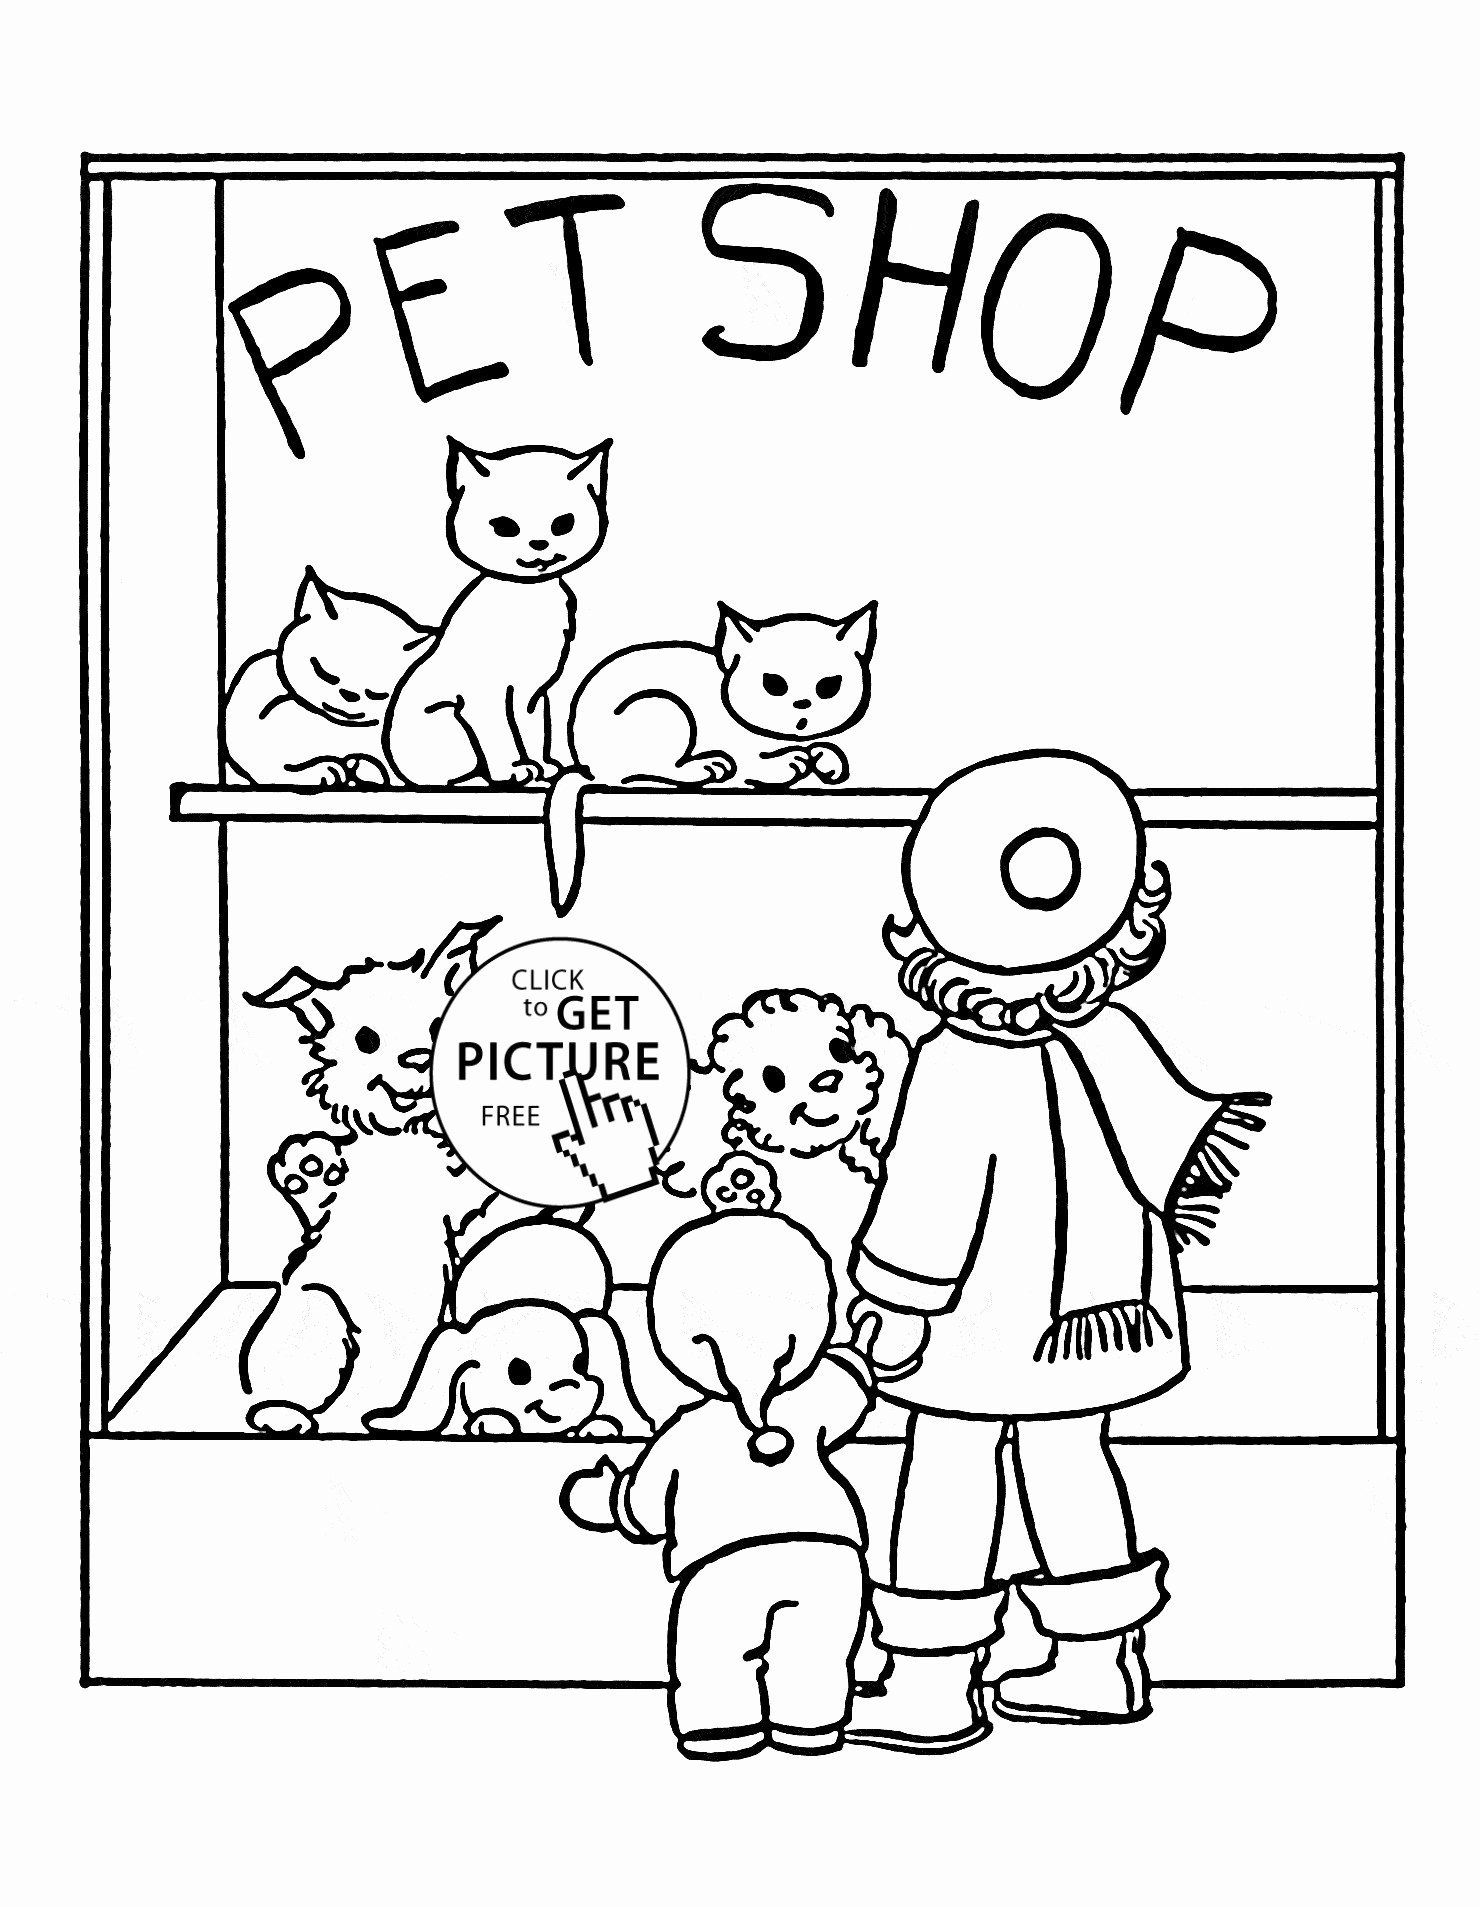 Alphabet U Coloring Pages Fresh Coloring Pages Happy Birthday Dog Free Rainy Day Bunny Coloring Pages Hello Kitty Colouring Pages Christmas Coloring Pages